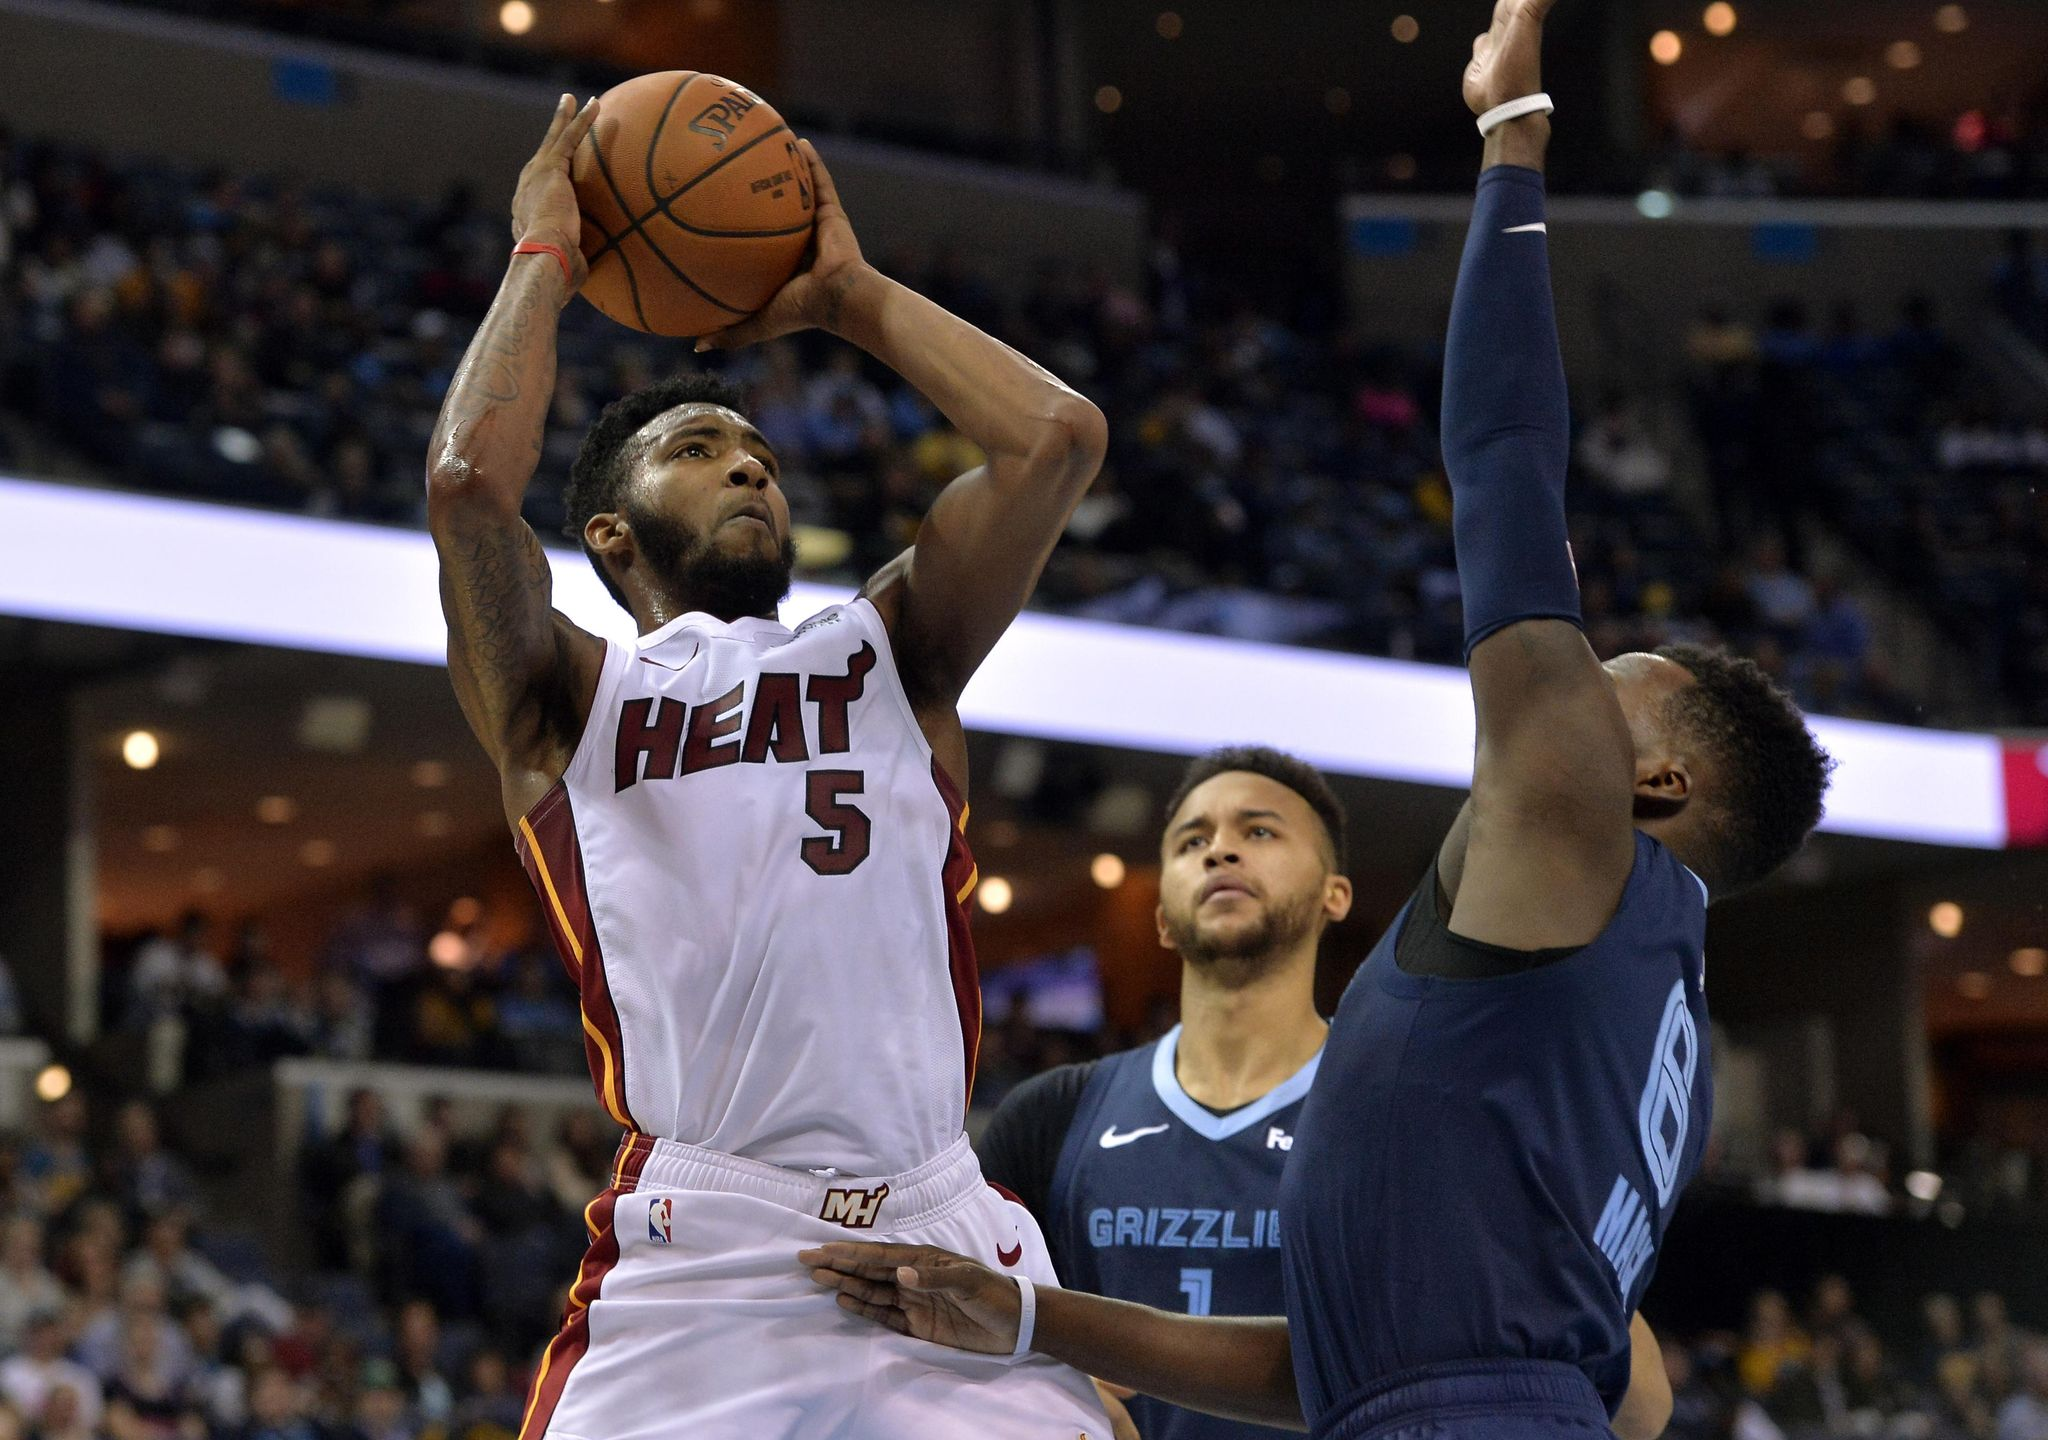 Heat_grizzlies_basketball_99065_s2048x1440